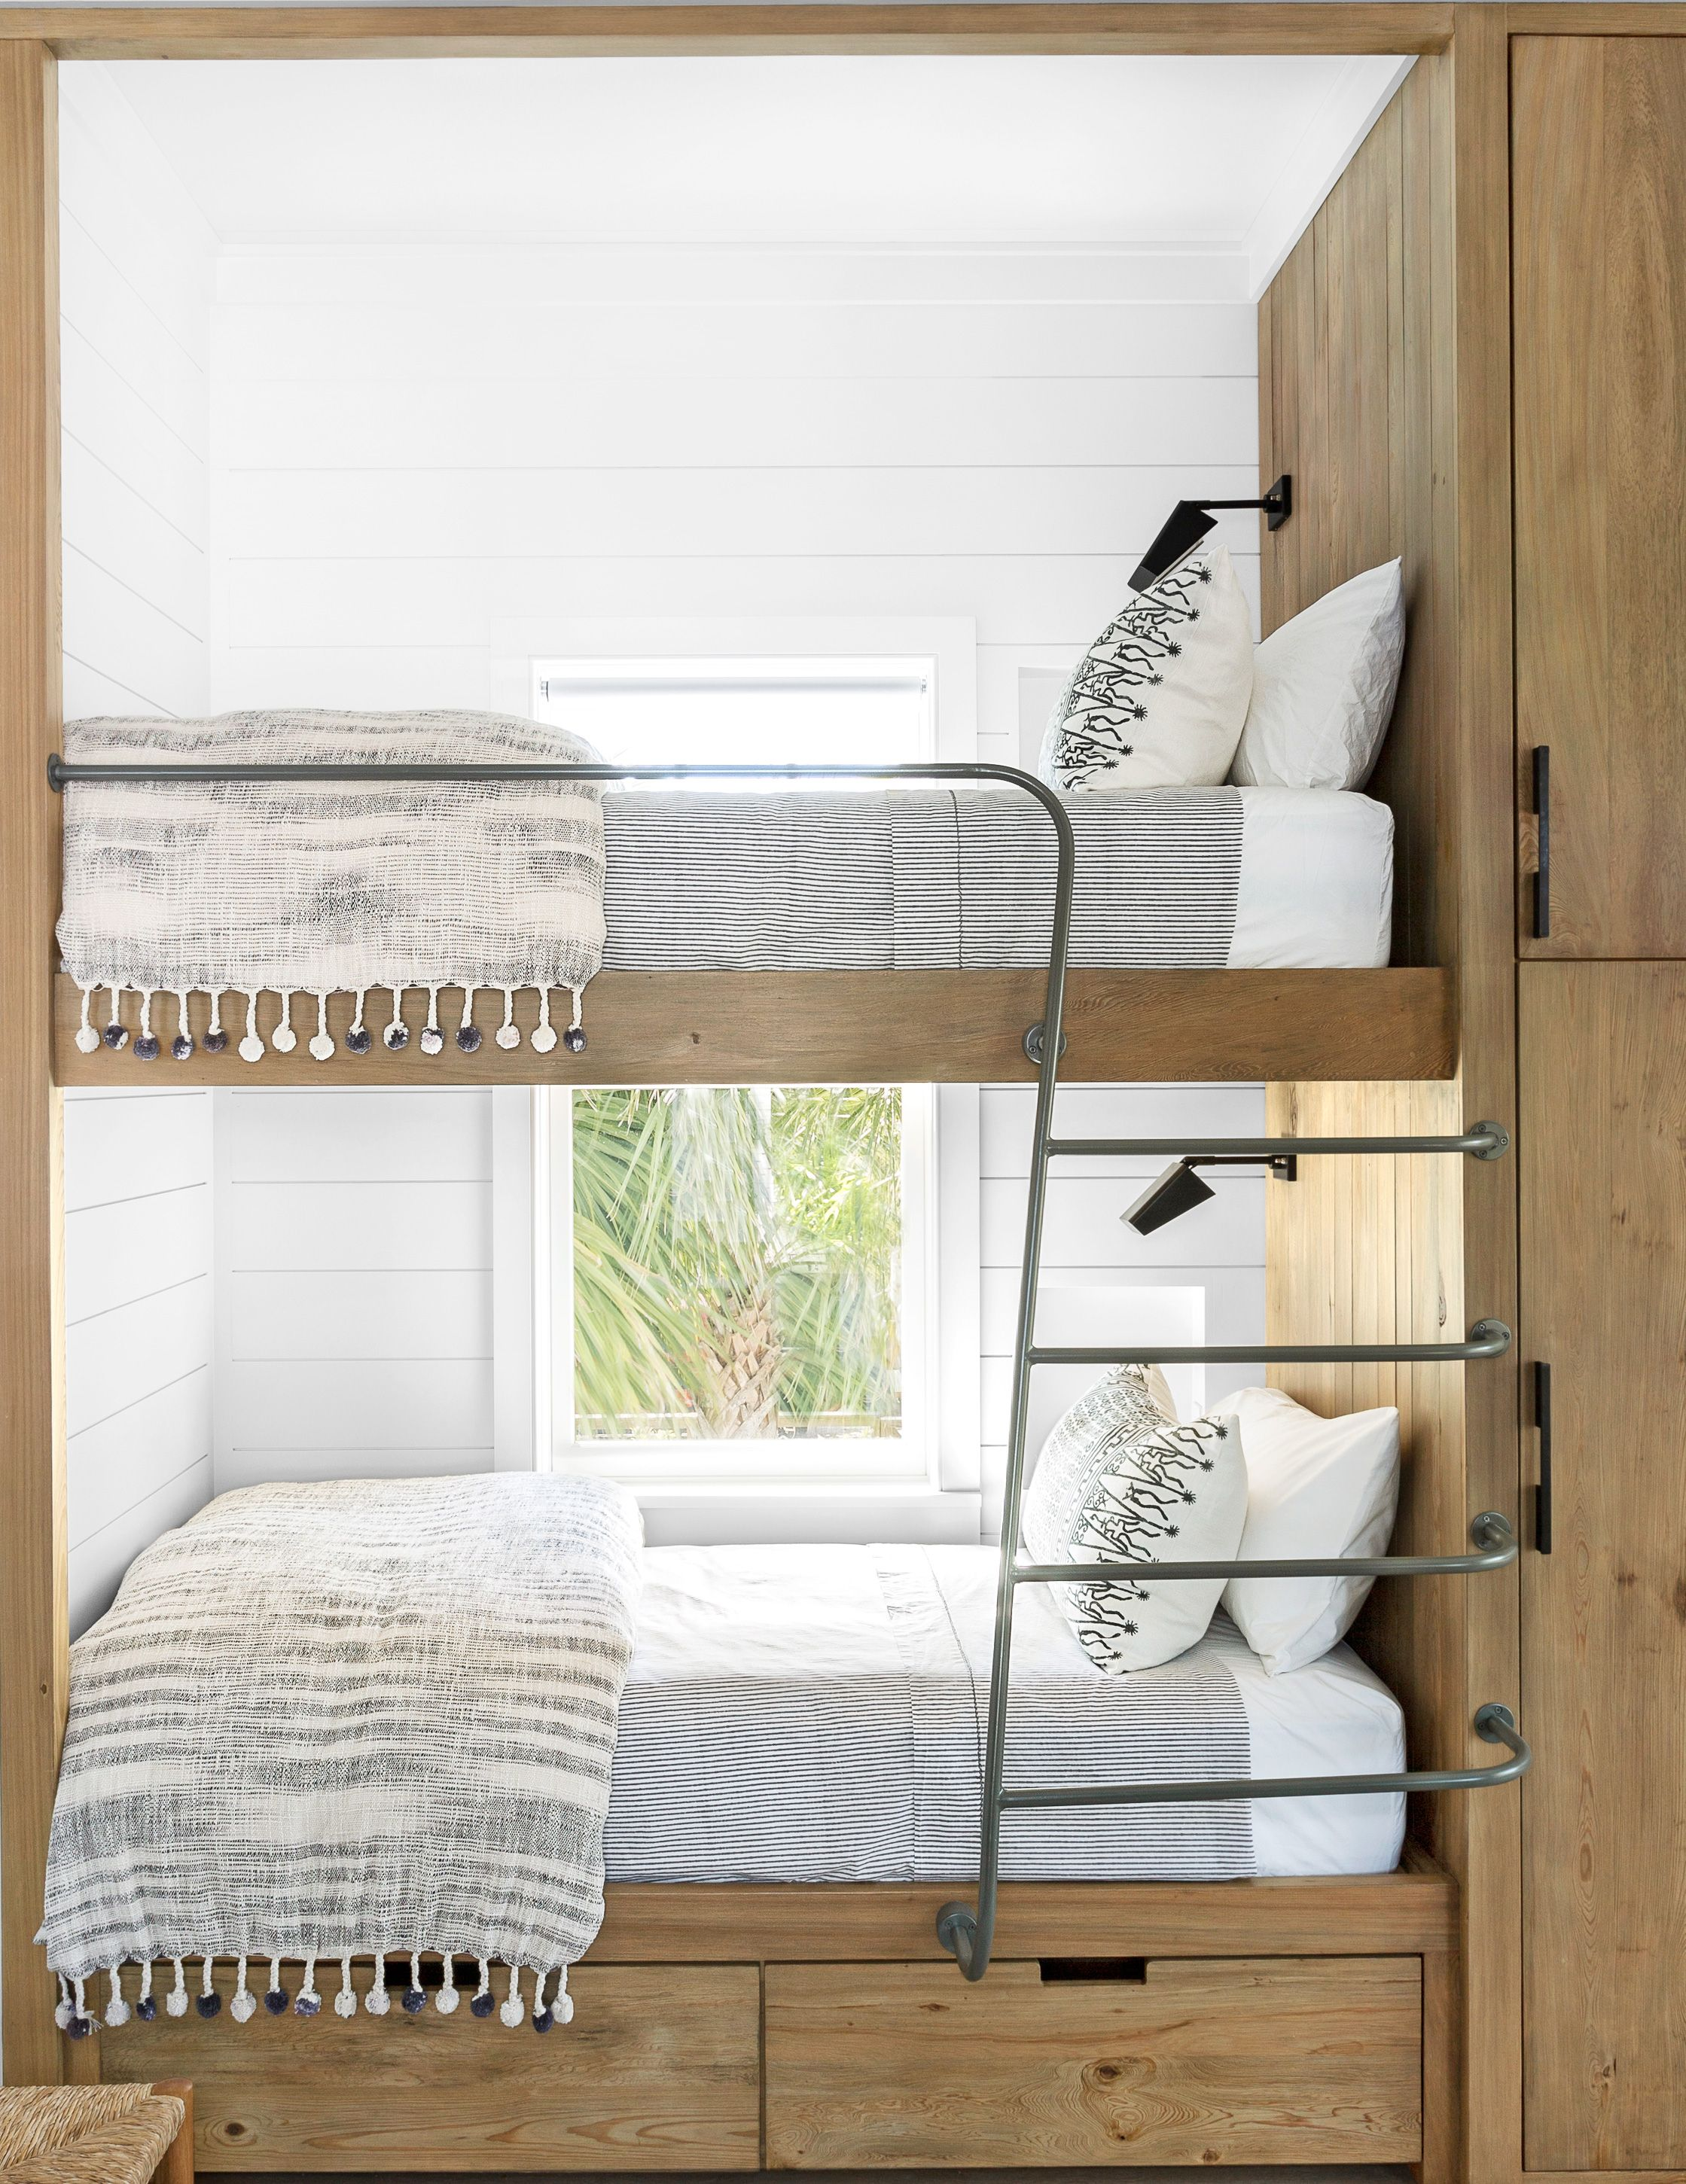 House Beautiful & 16 Cool Bunk Beds - Bunk Bed Designs - Stylish Bunk Room Ideas for ...